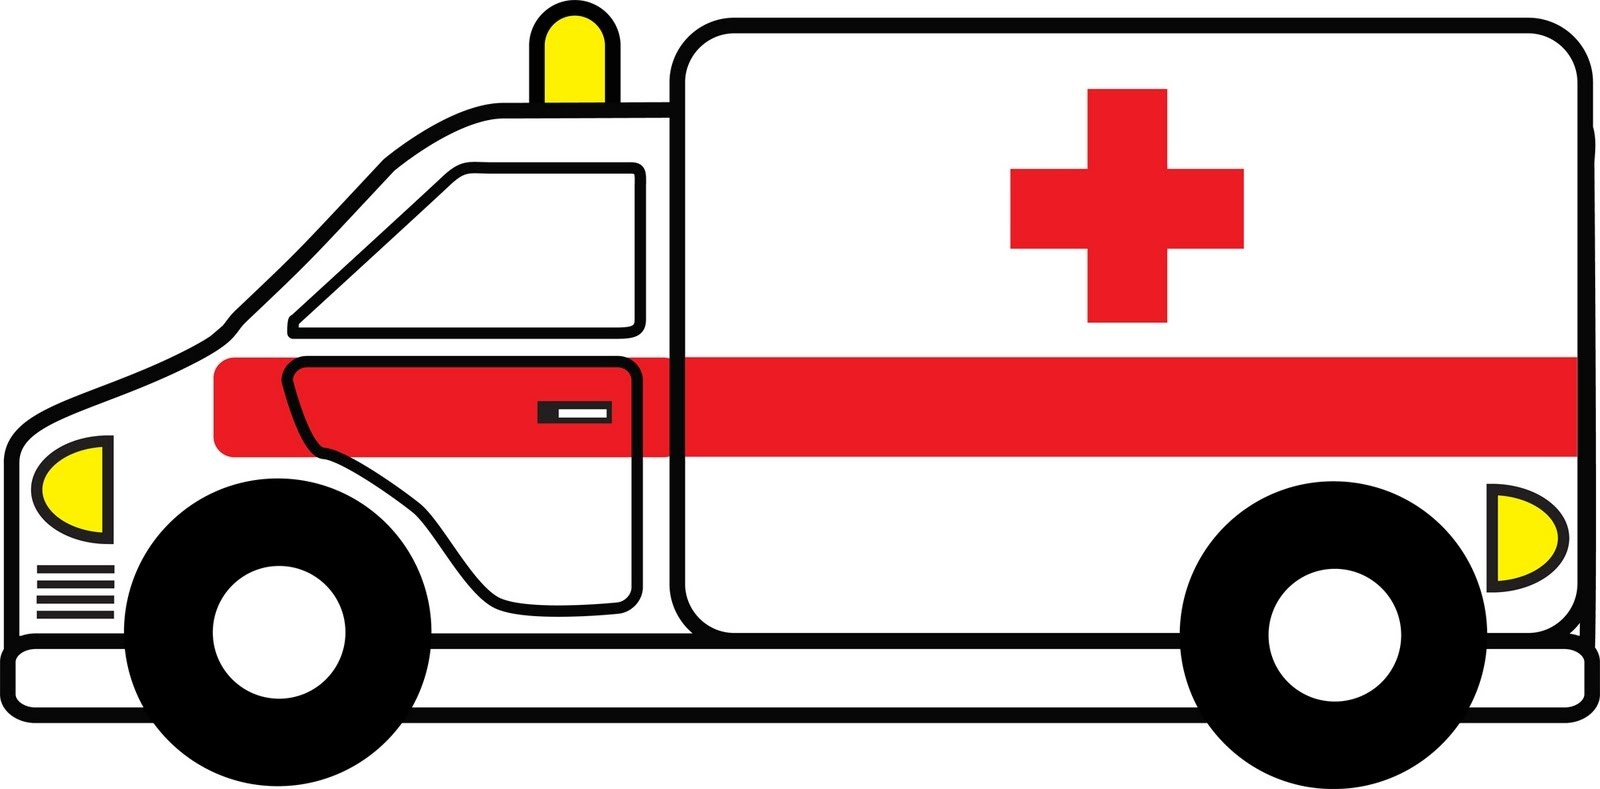 Ambulance clipart outline. Kind of letters free